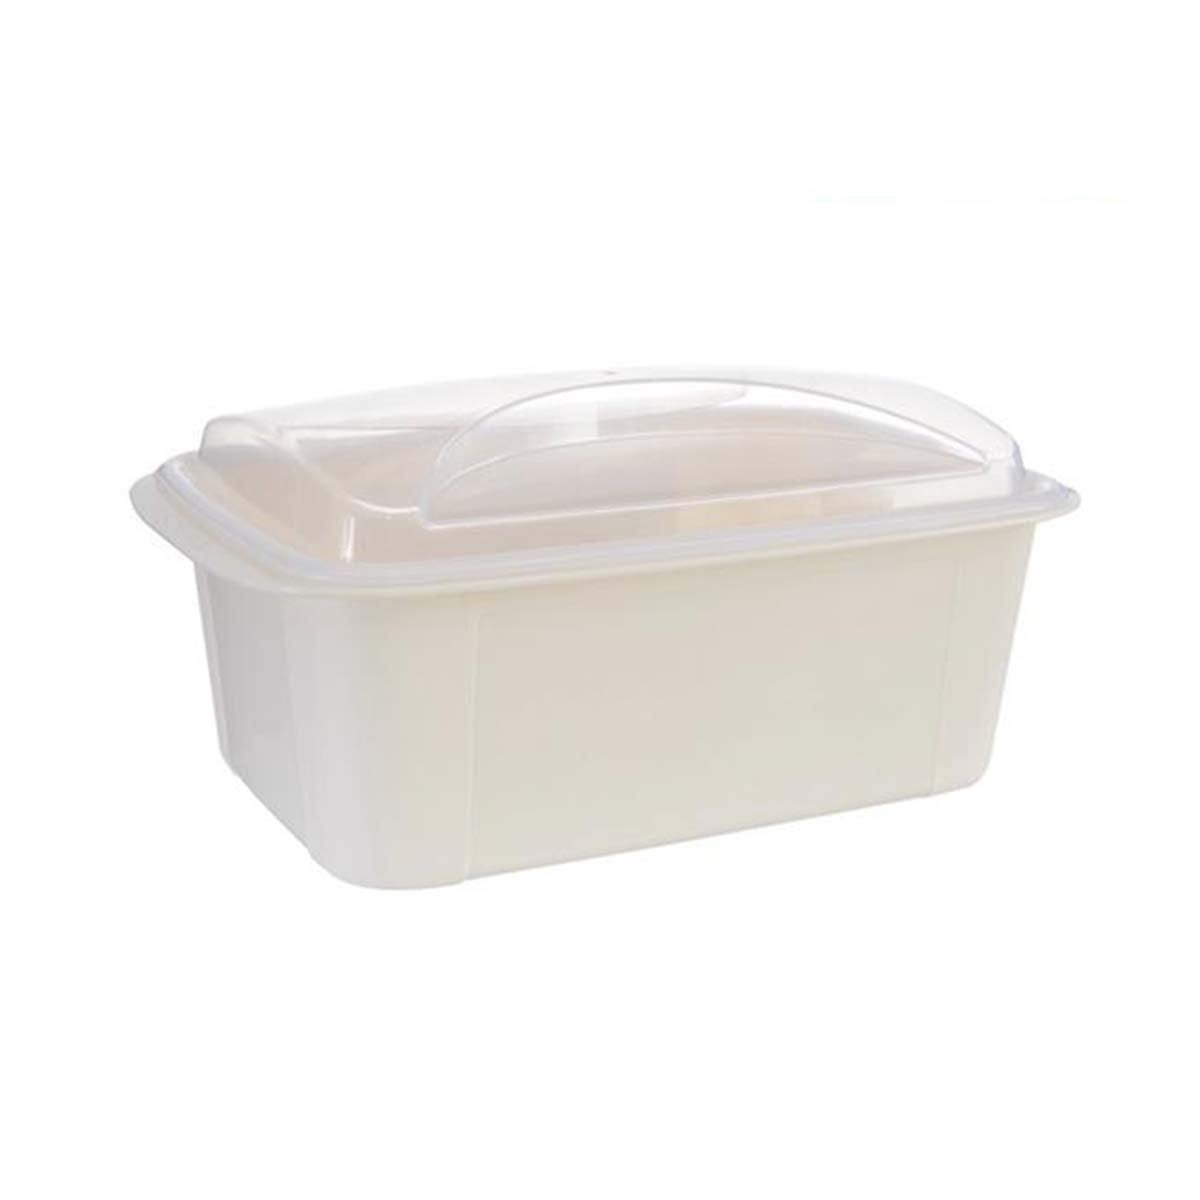 0303 MULTI PURPOSE CONTAINER 6.5L (Random Color)